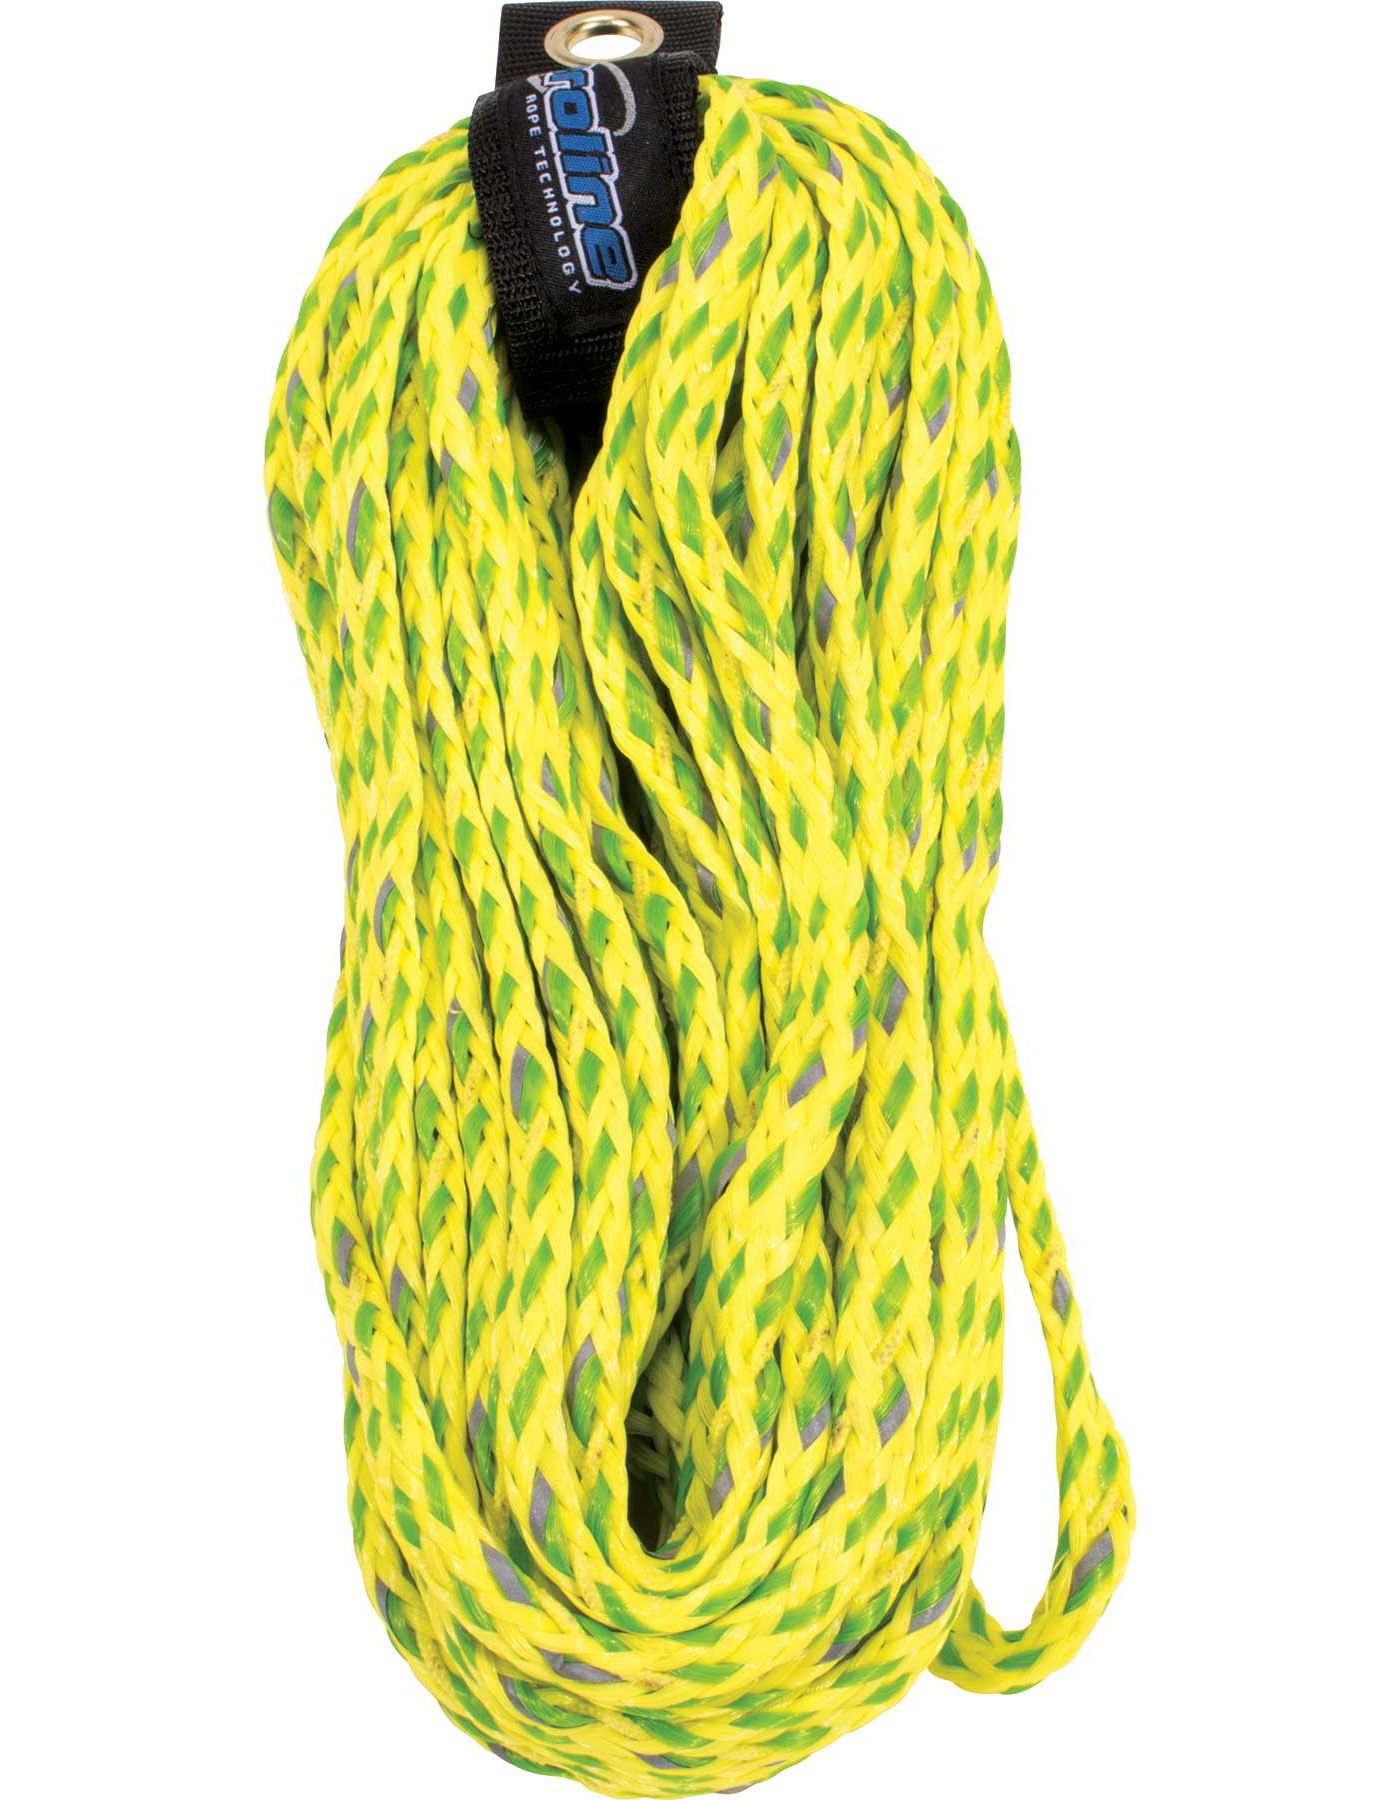 Connelly 2-Rider Safety Tube Tow Rope